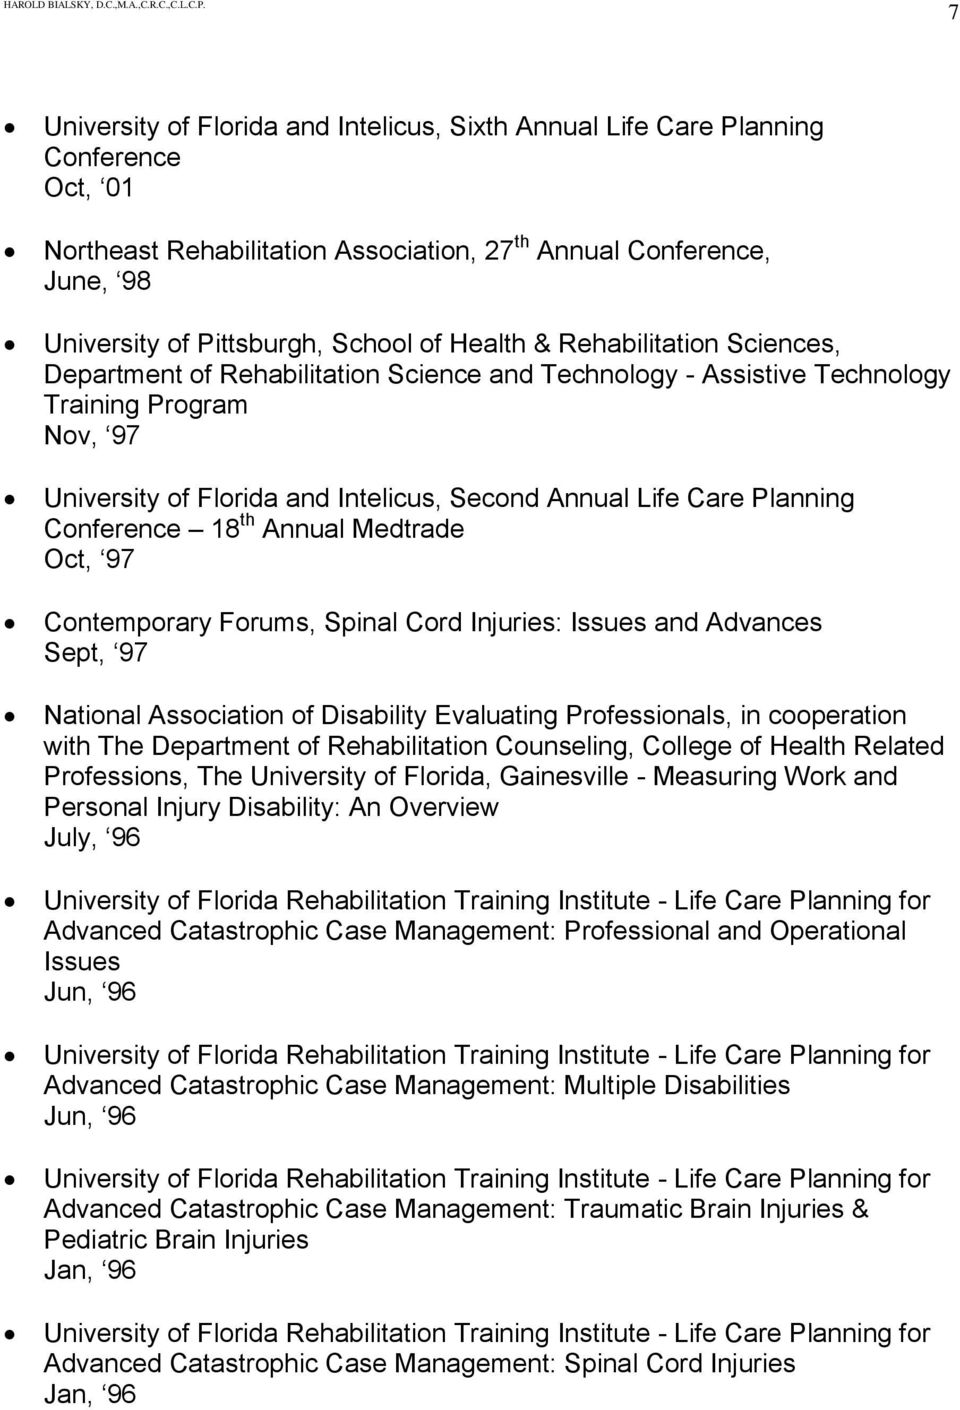 Planning Conference 18 th Annual Medtrade Oct, 97 Contemporary Forums, Spinal Cord Injuries: Issues and Advances Sept, 97 National Association of Disability Evaluating Professionals, in cooperation